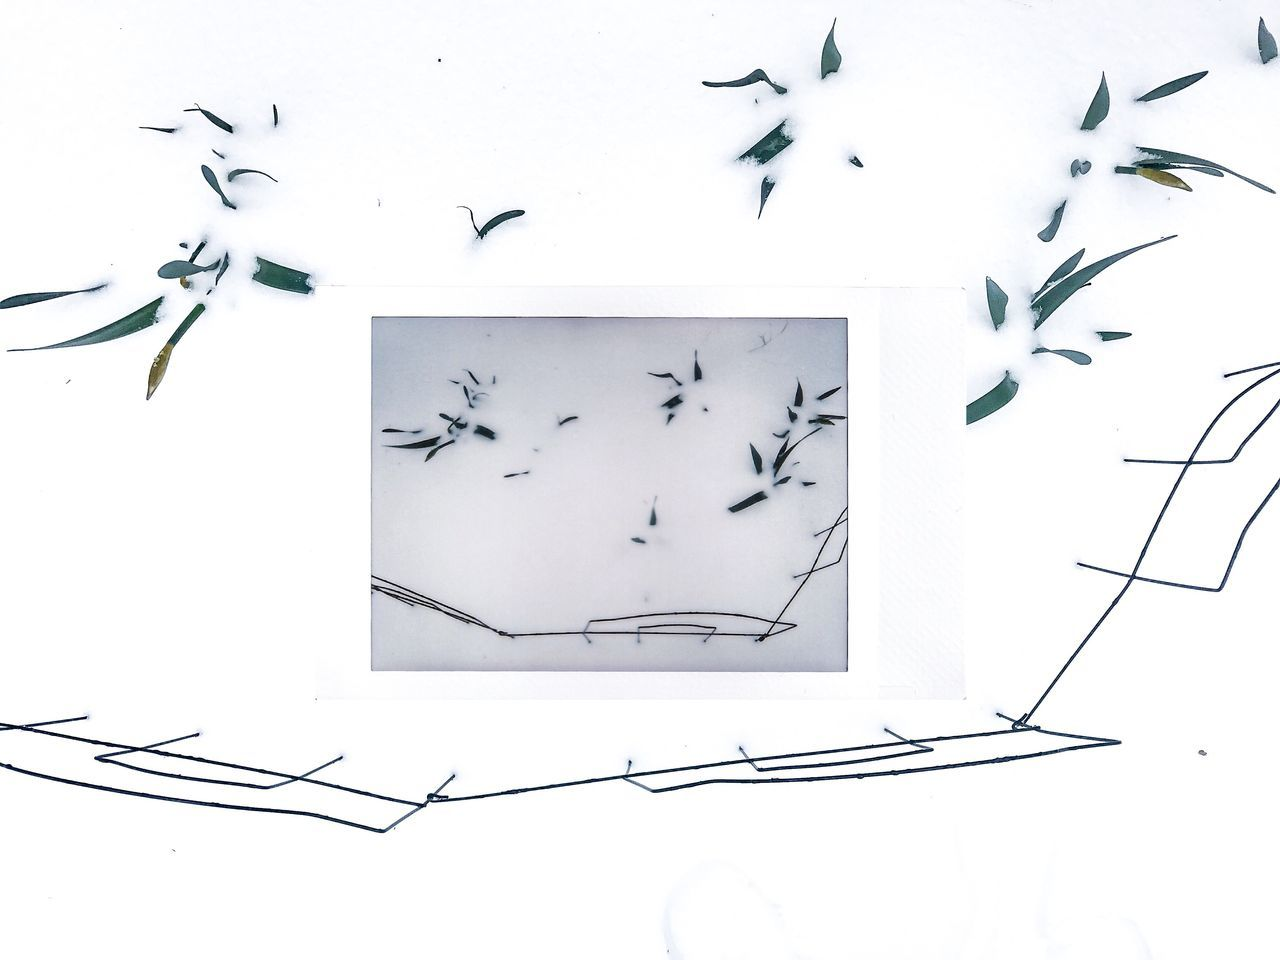 Bird Day Instant Photo A Day Minimalism Nature No People Weather